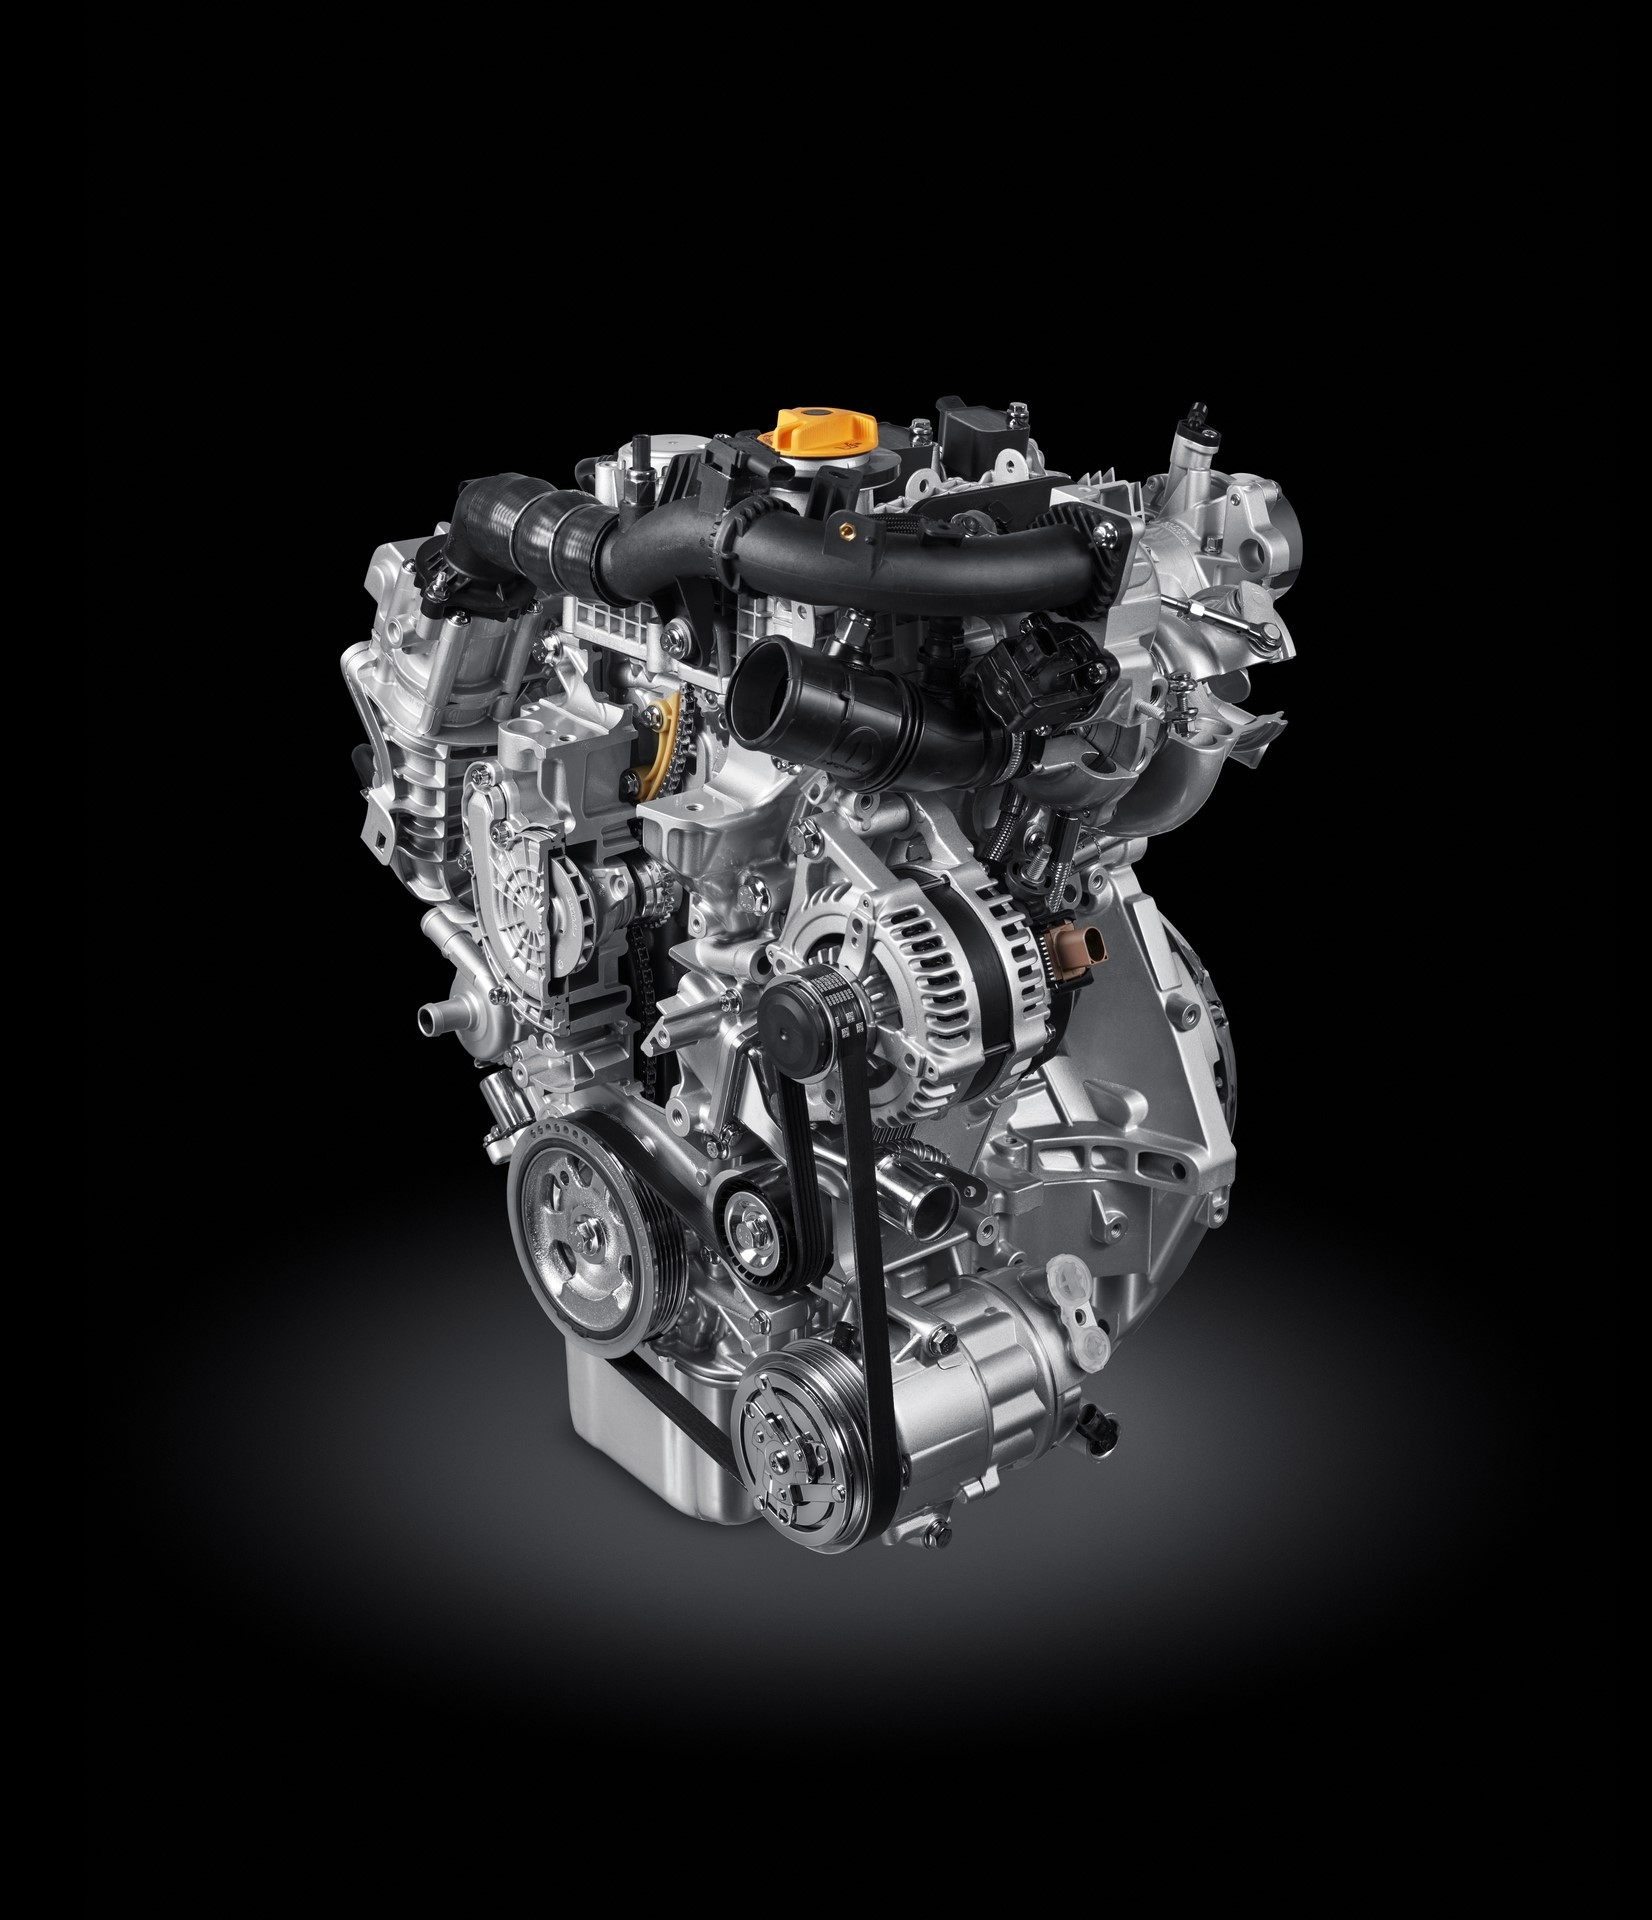 180828_Fiat_New-10L-Turbo-3-cylinder-120HP_12